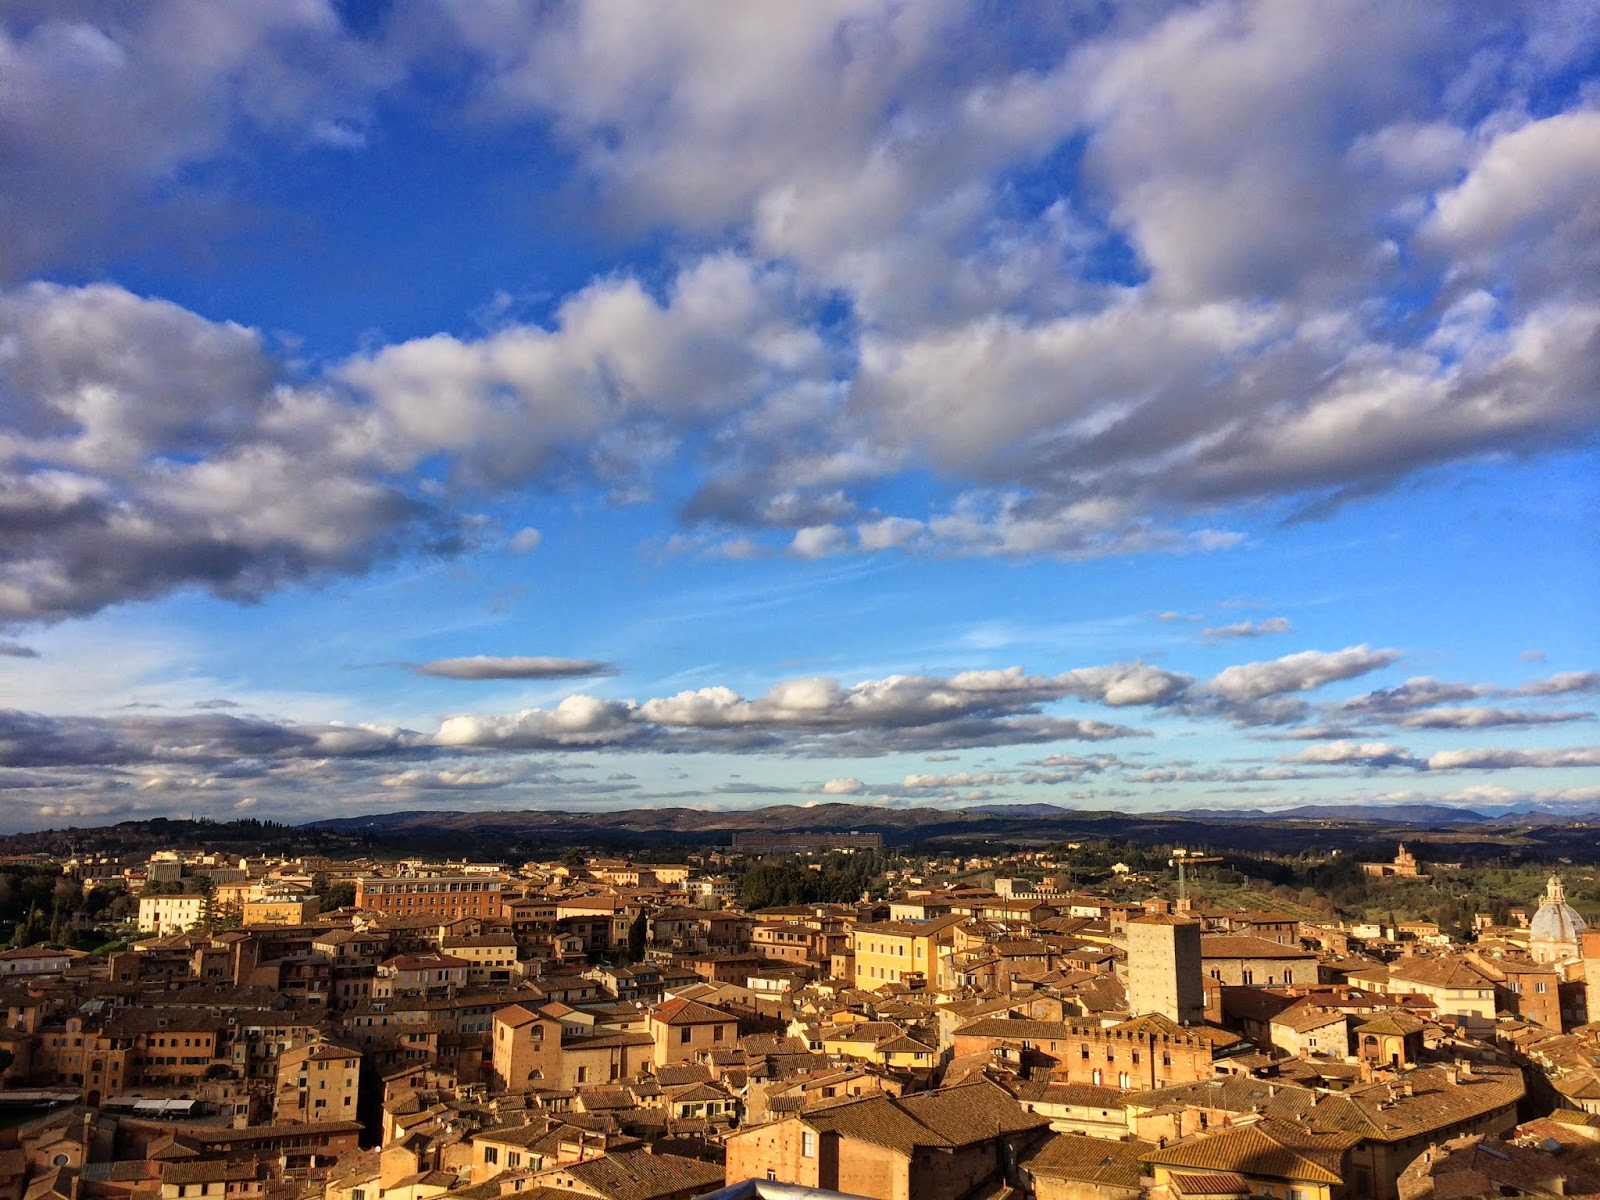 sienna italy travel guide